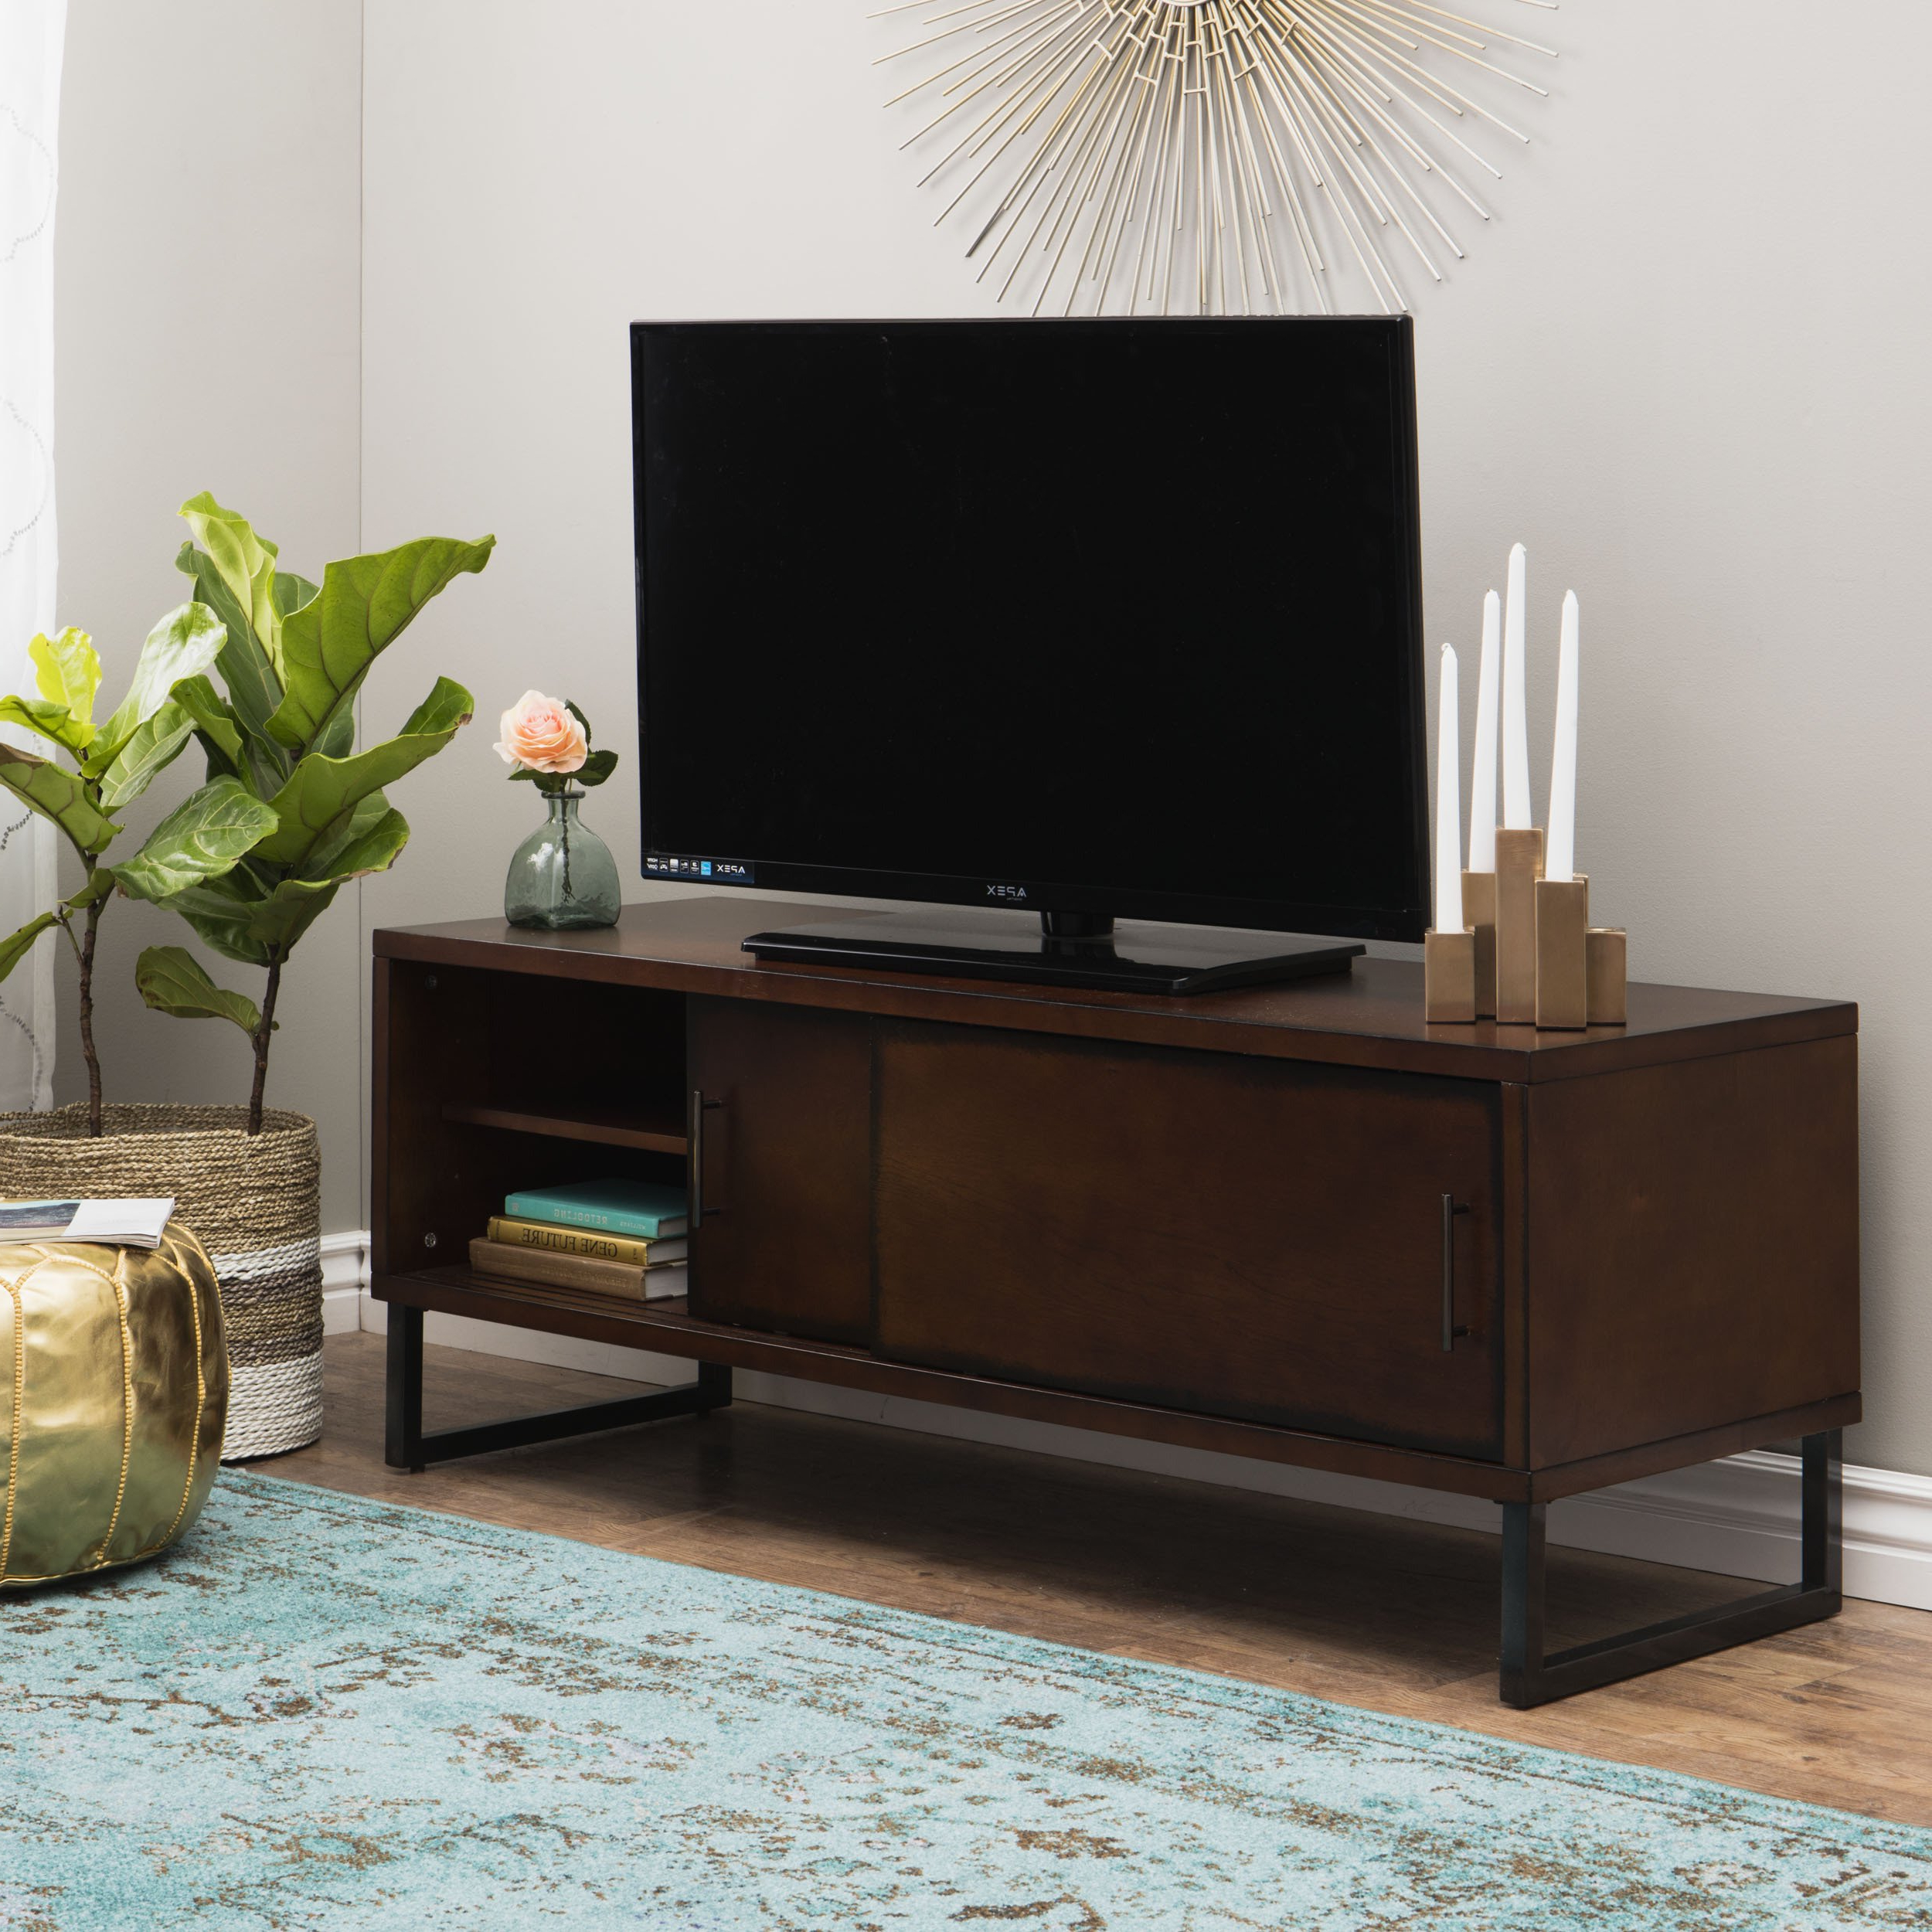 Shop Carbon Loft 54 Inch Breckenridge Walnut Entertainment Center With Regard To 2017 Rowan 74 Inch Tv Stands (Gallery 20 of 20)